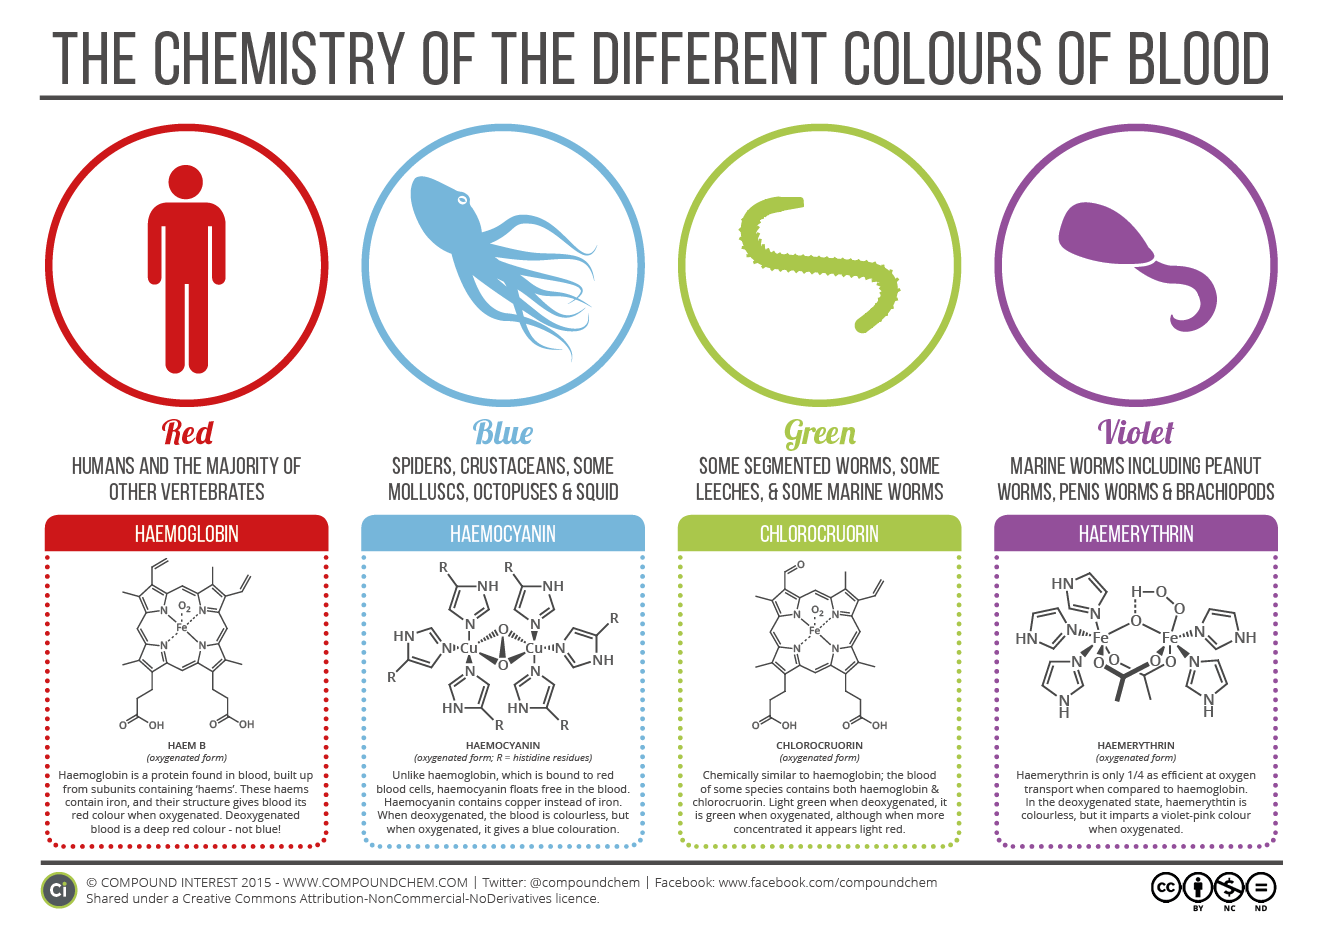 Chemistry-of-Blood-Colours-2015